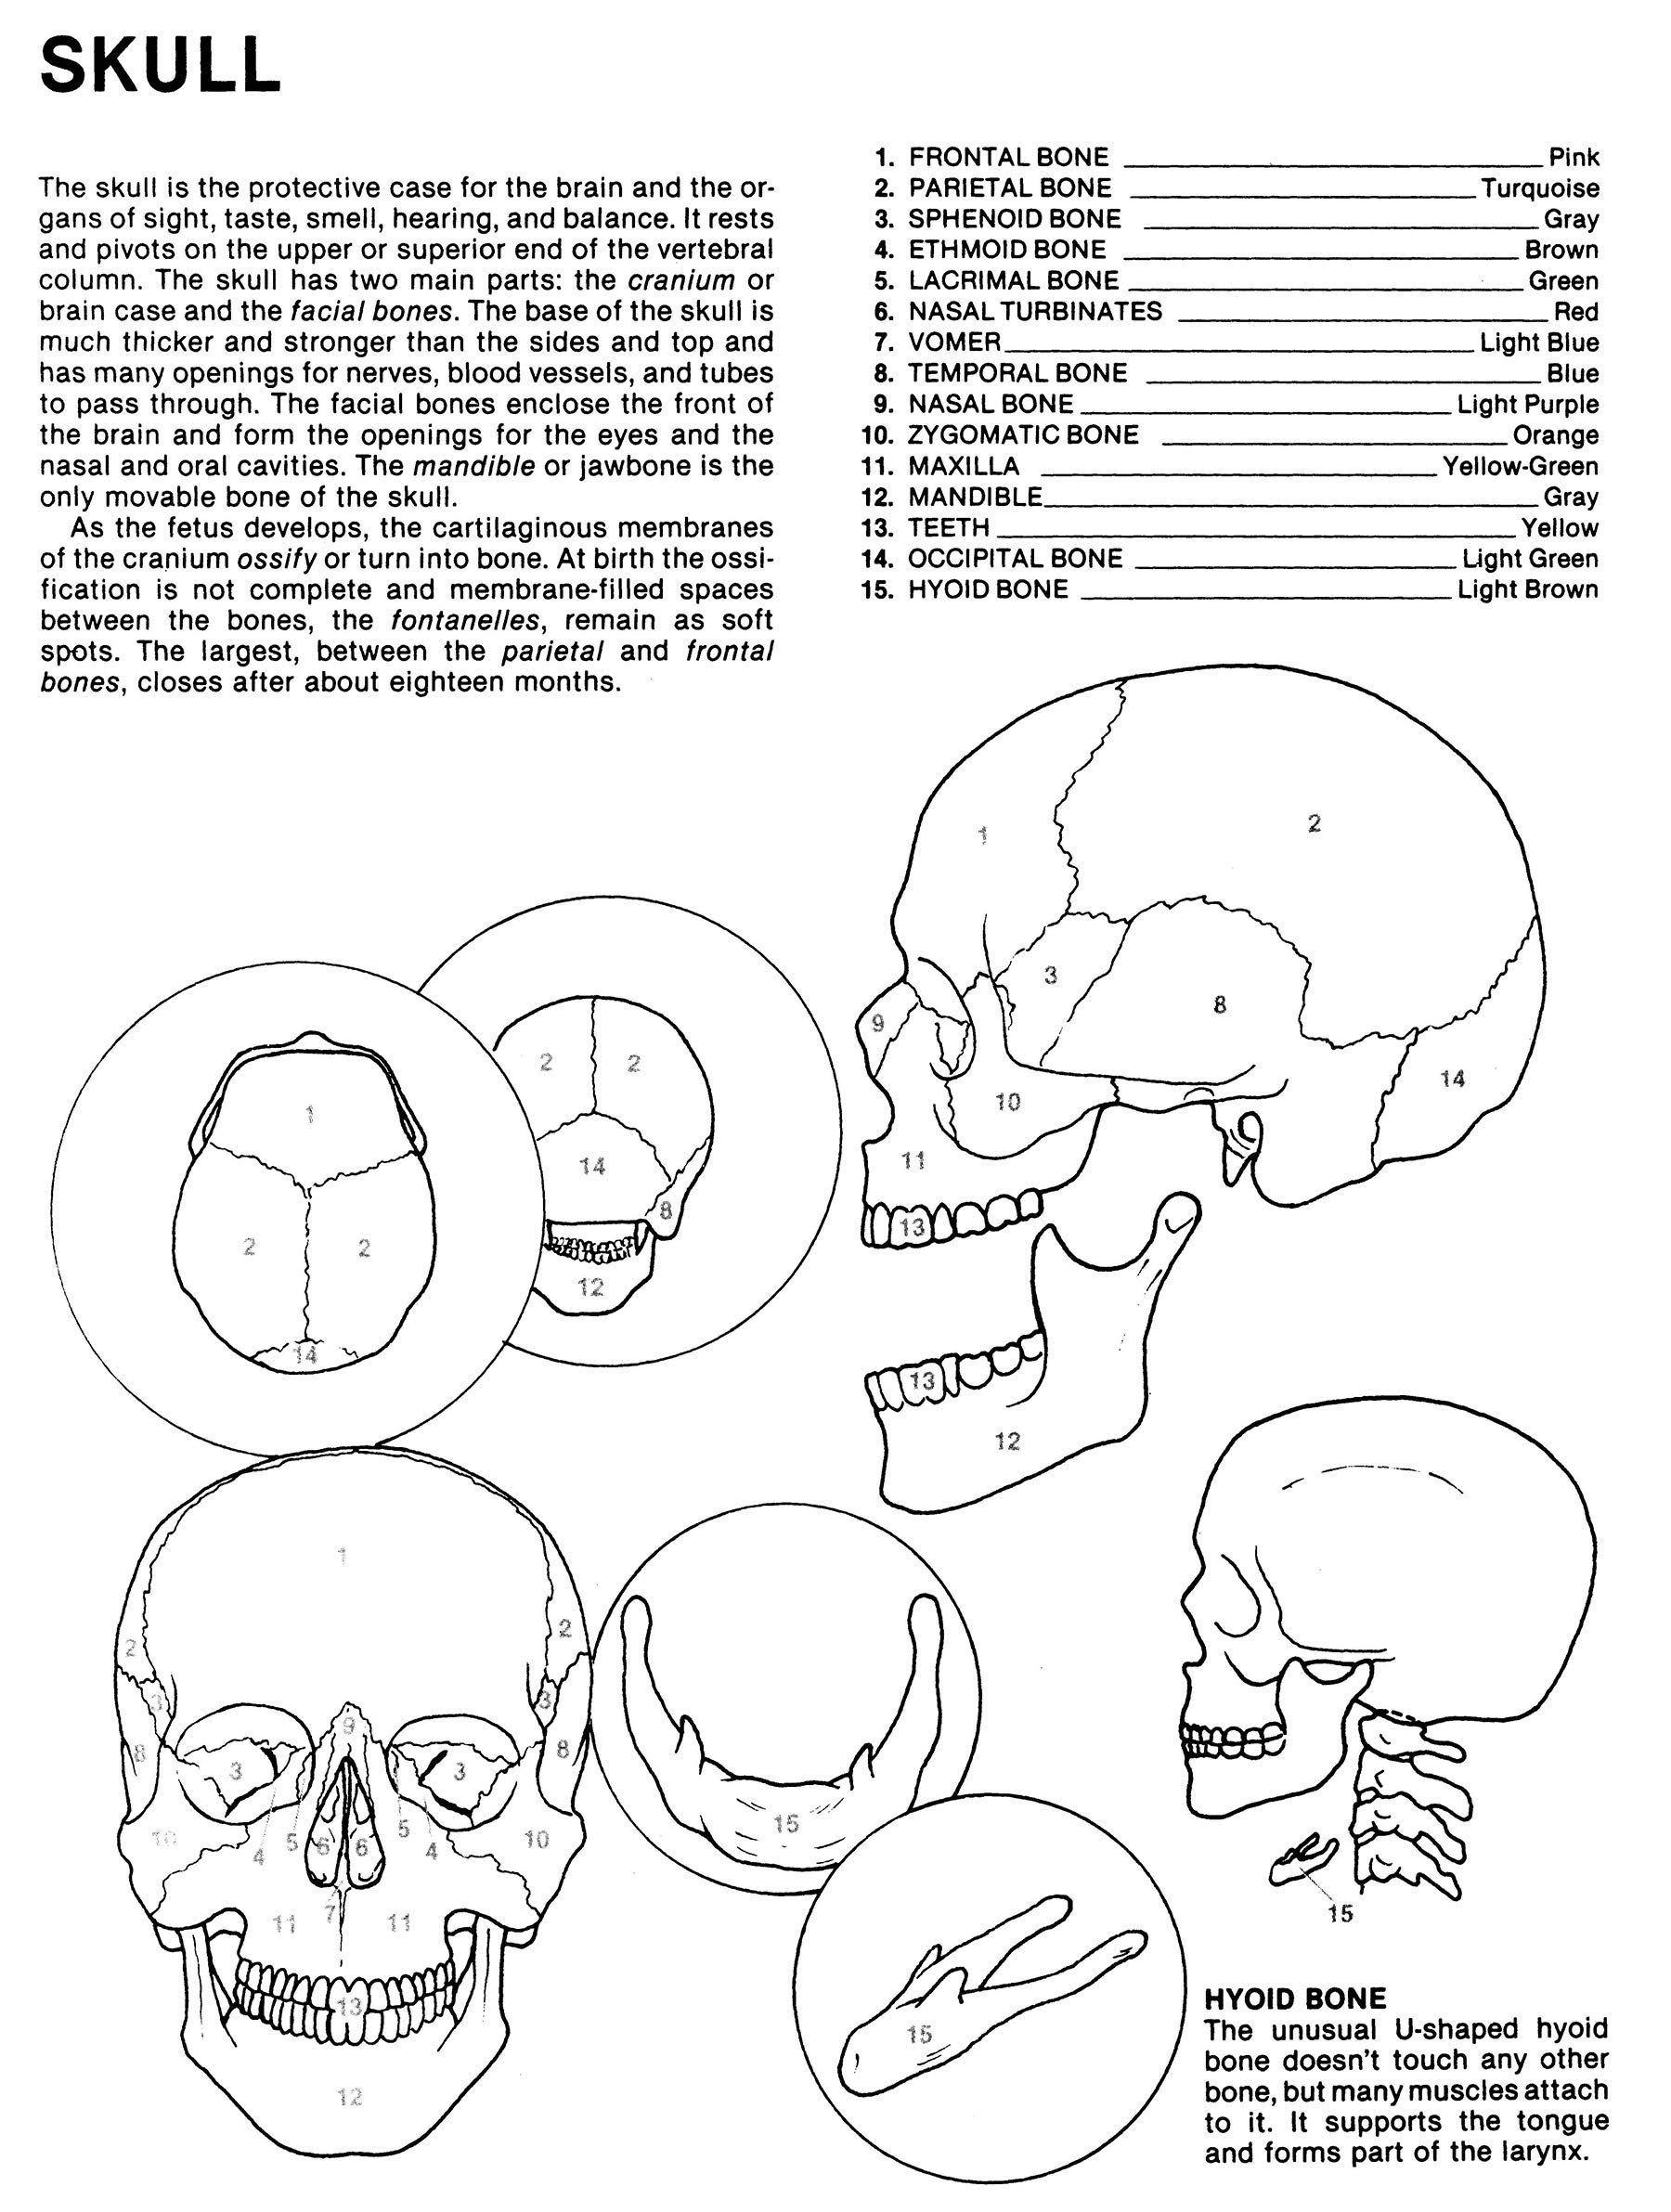 Human Anatomy Coloring Book An Entertaining And Instructive Guide To The Human Body Bones Muscles Blood Nerves And How They Work Coloring Books Dover Children S Science Books Matt Margaret Ziemian Joe